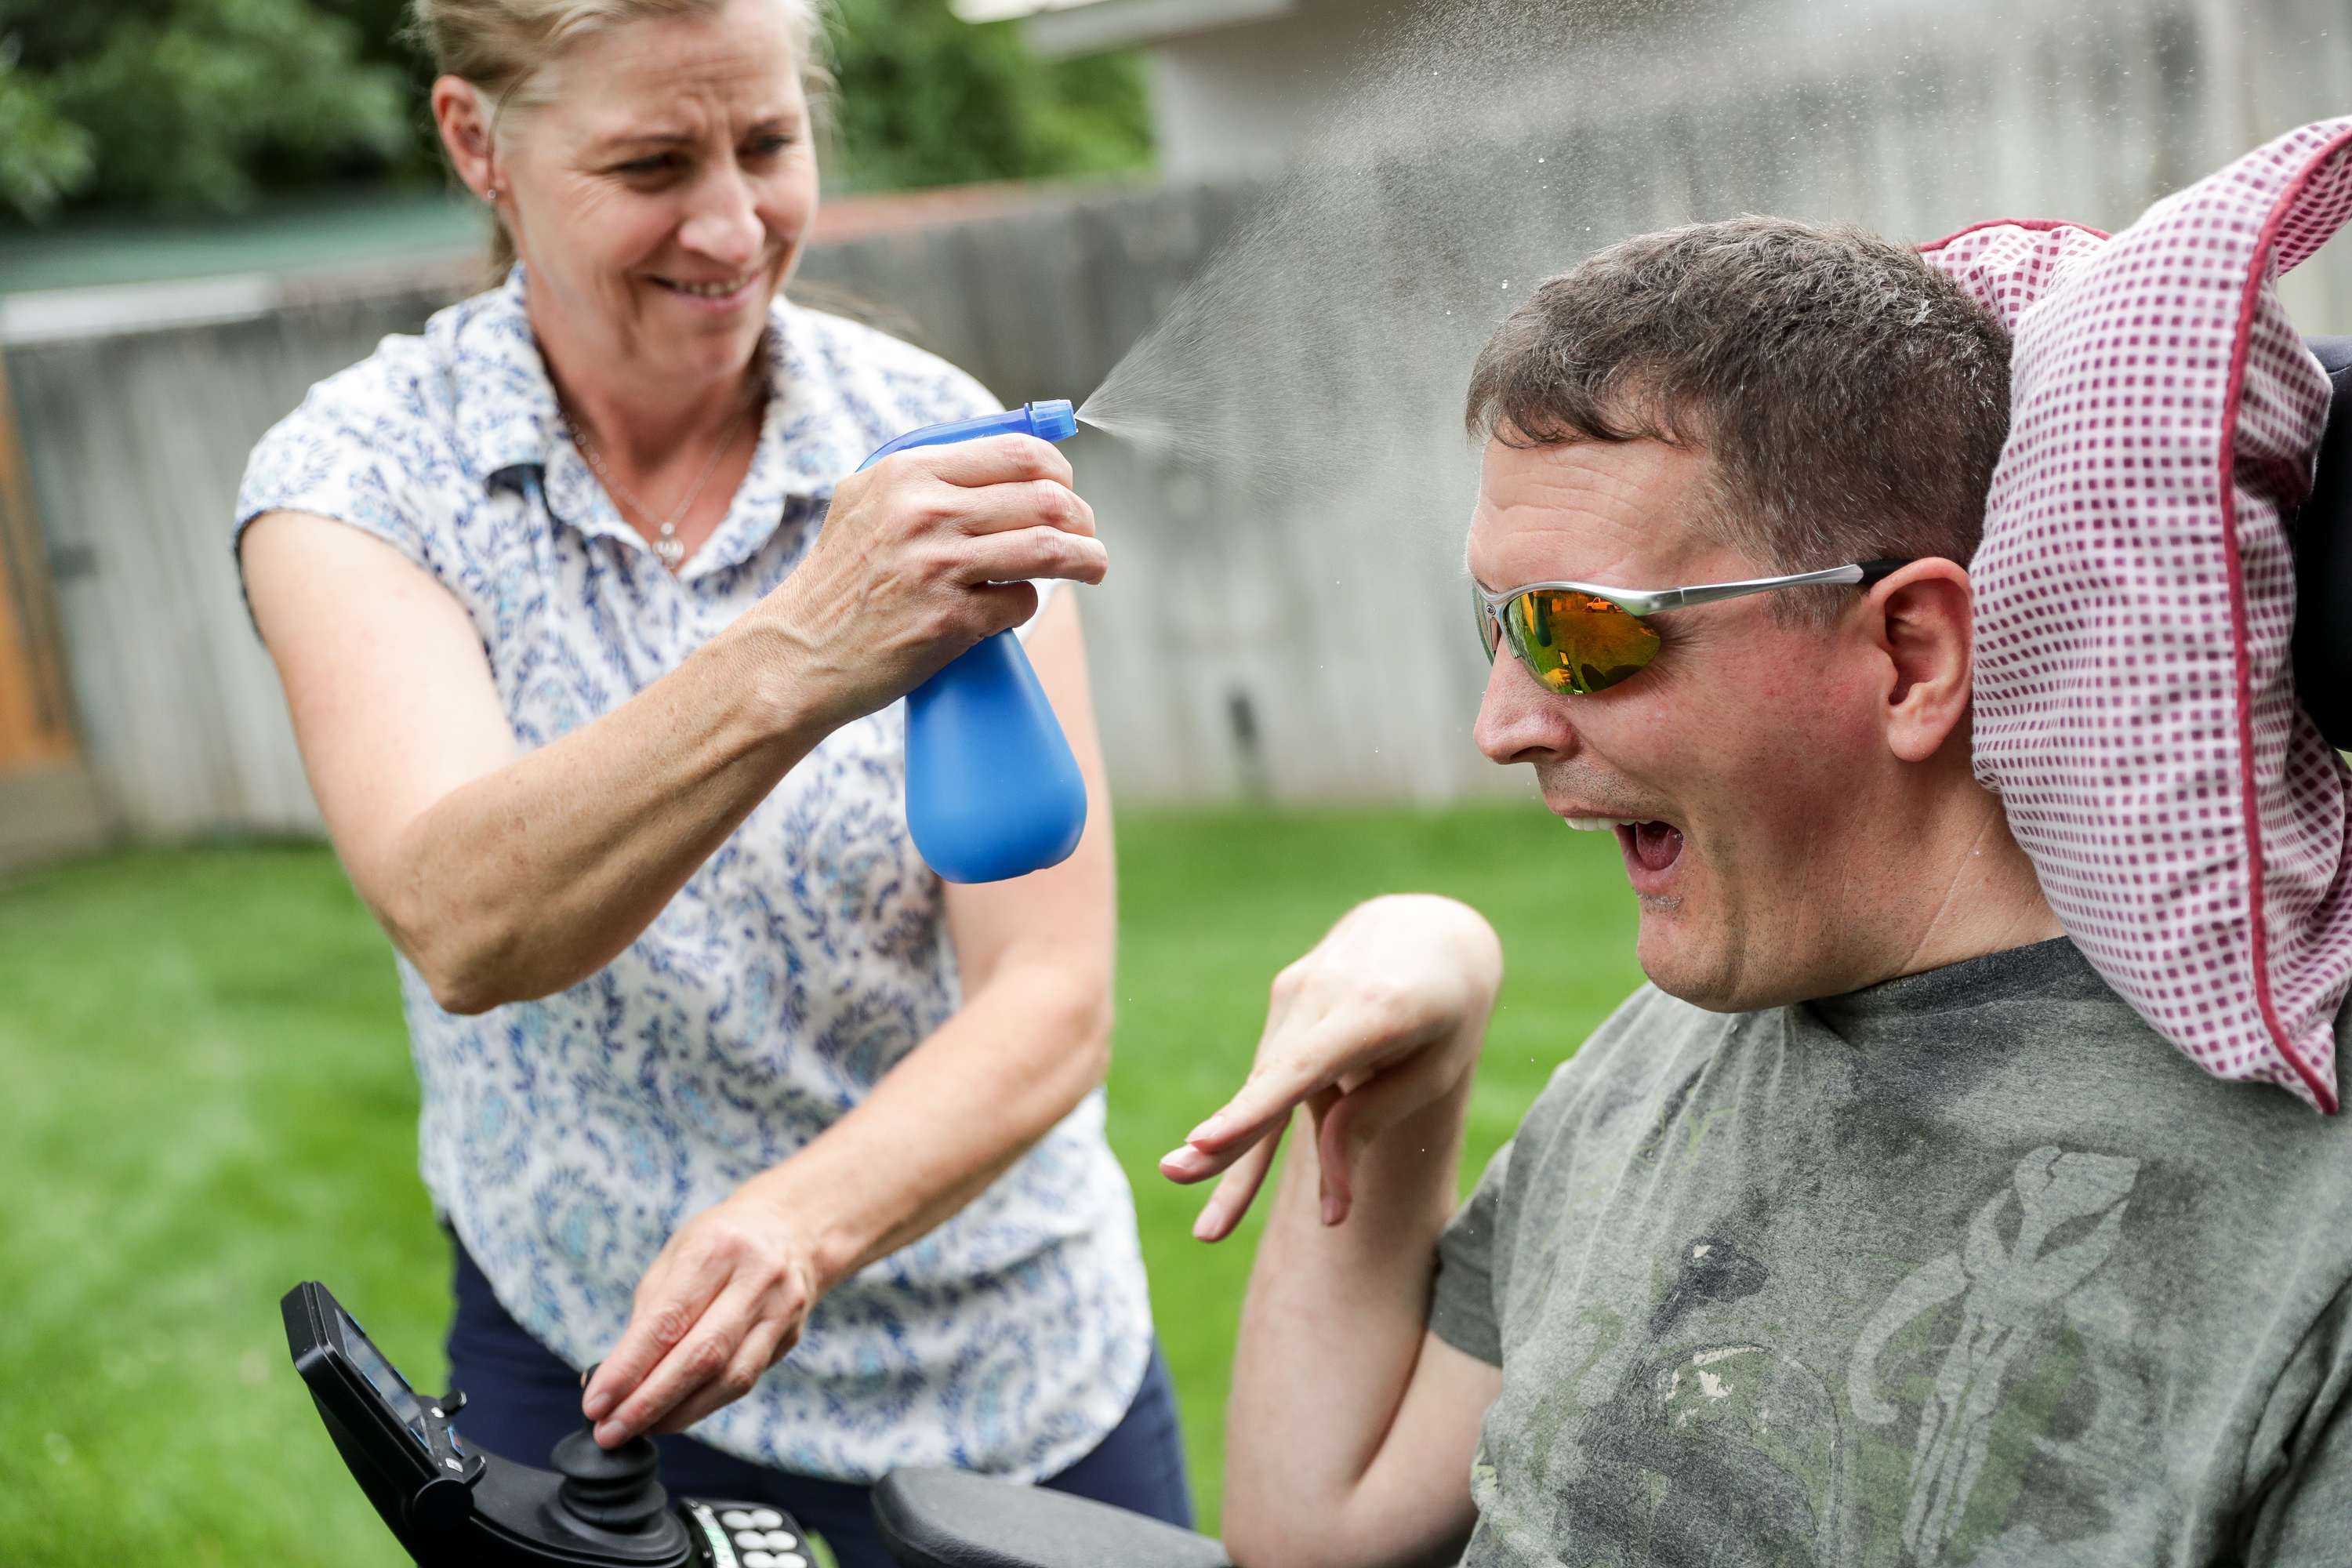 Orin Voorheis smiles as his caregiver, Wendy Tobey, sprays him with a mist of water while driving around in a motorized wheelchair at his home in Pleasant Grove, Utah, on Tuesday, July 10, 2018. Because Voorheis is unable to regulate his body temperature due to his brain injury, his caregivers must be careful to keep him cool when outside in heat.